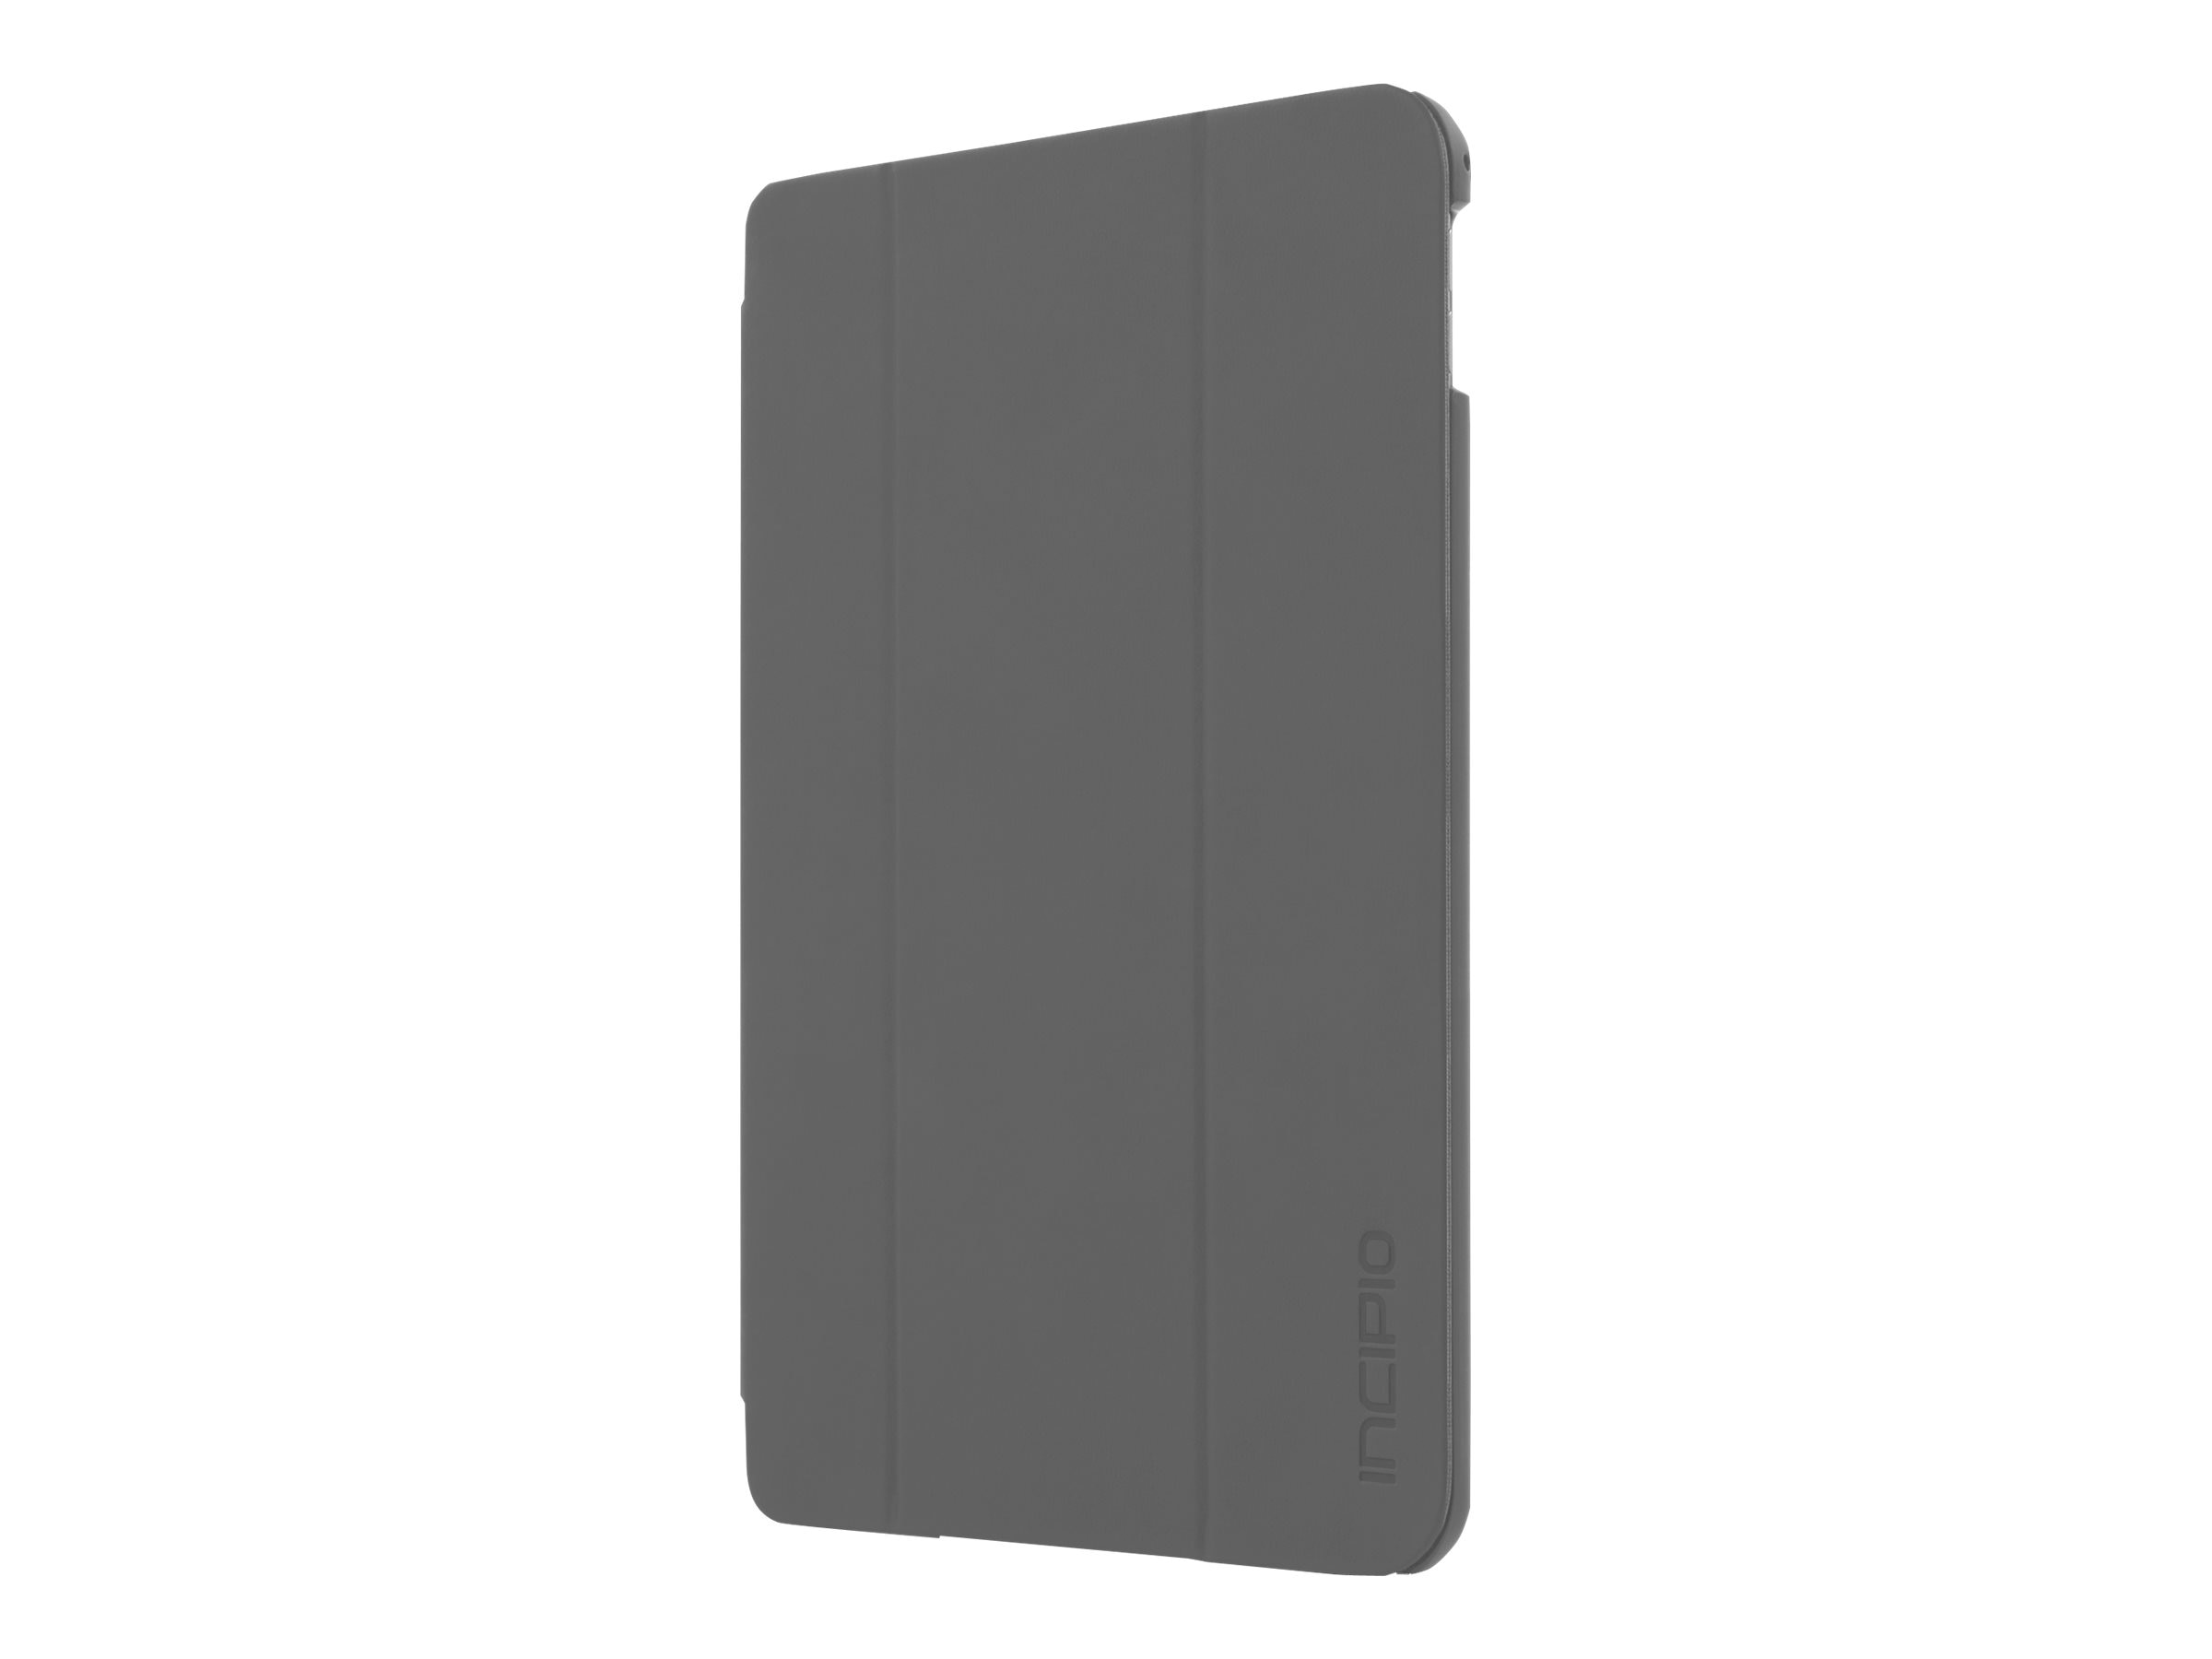 Incipio Tuxen Folio Case for iPad Air 2, Charcoal